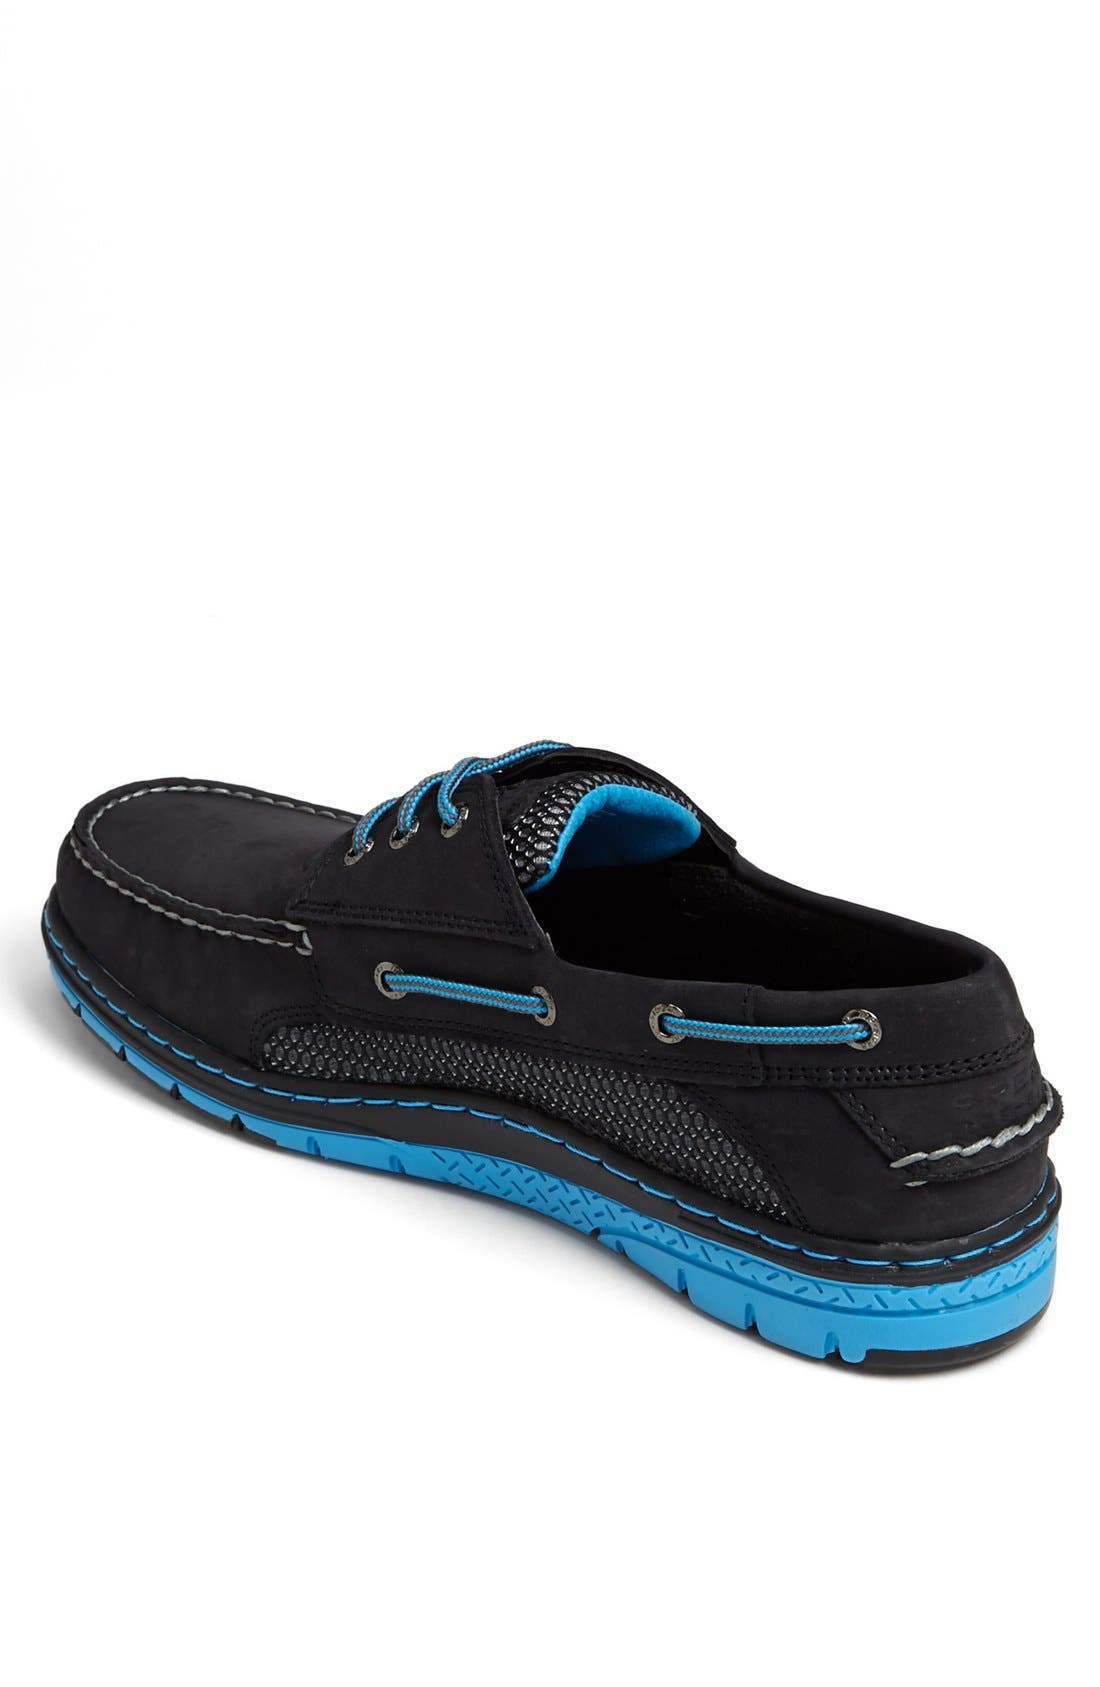 'Billfish Ultralite' Boat Shoe,                             Alternate thumbnail 23, color,